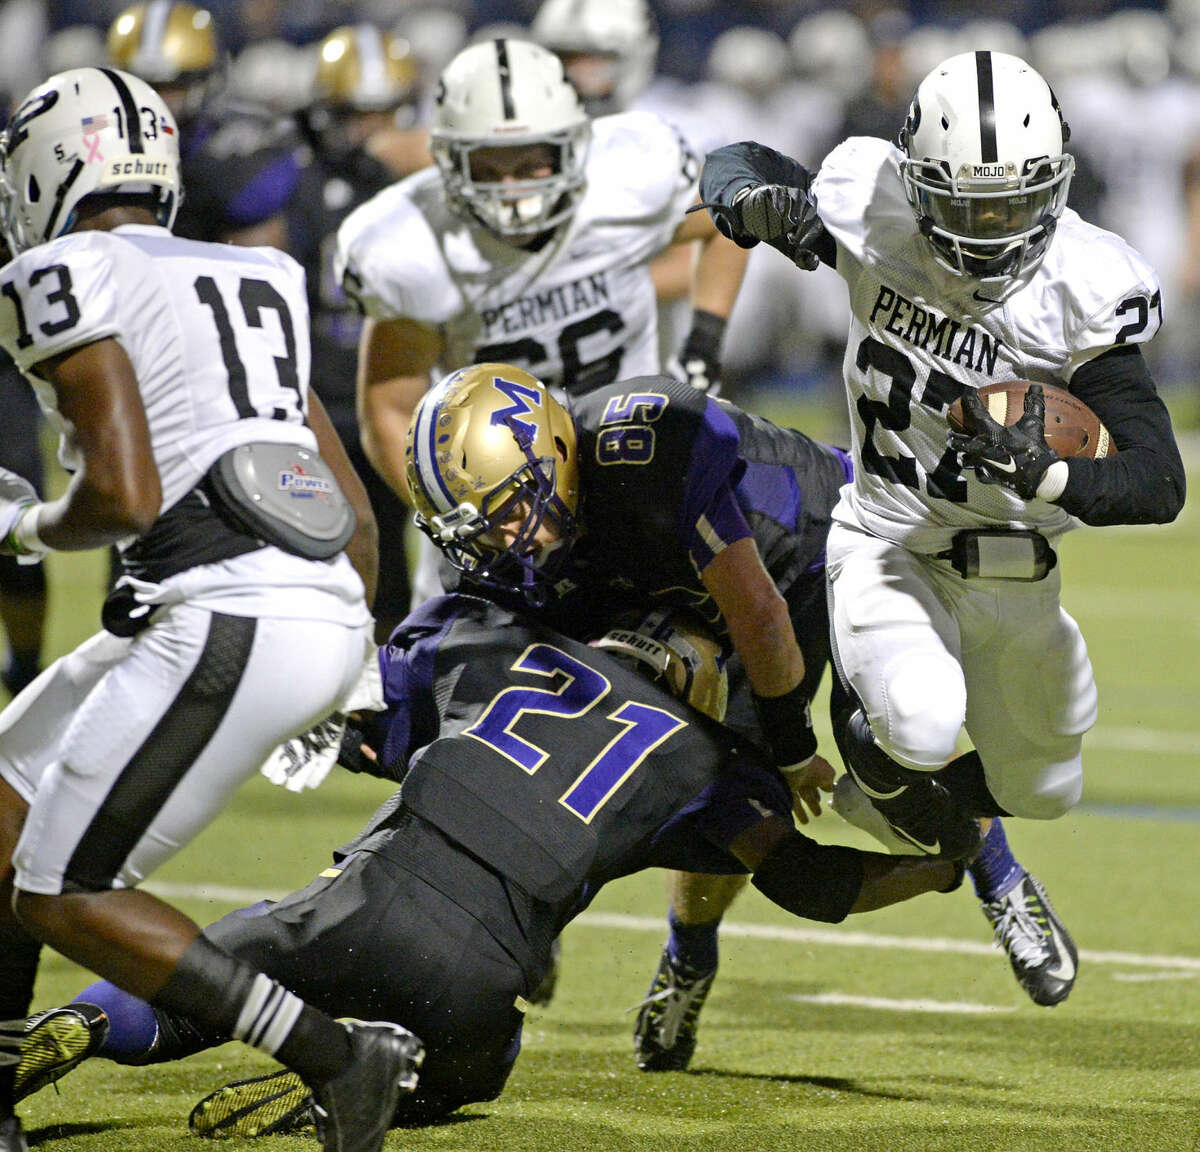 Midland High cornerback Raekwon Anderson (21) and linebacker Jack Youngblood (85) get tangled up with each other as Permian's Brandon Bailey (27) blasts past for a touchdown Friday, Oct. 23, 2015, at Grande Communications Stadium. James Durbin/Reporter-Telegram